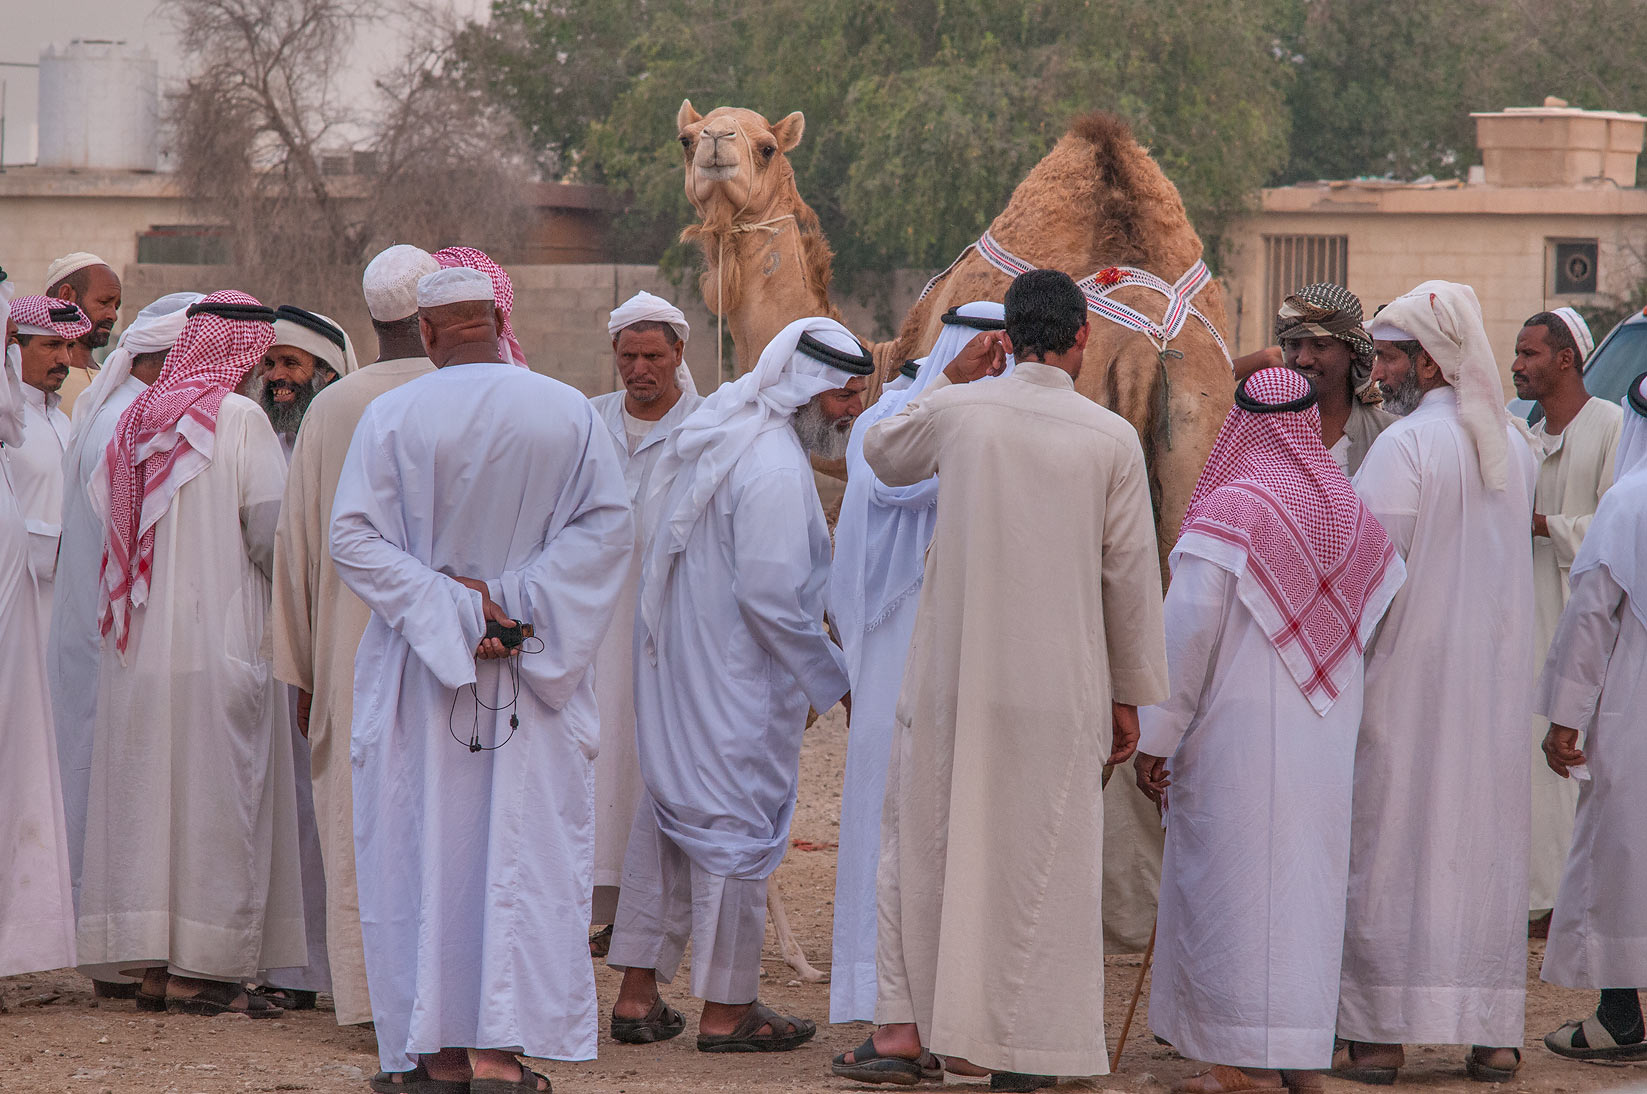 People meeting for camel shopping in livestock market, Abu Hamour area. Doha, Qatar